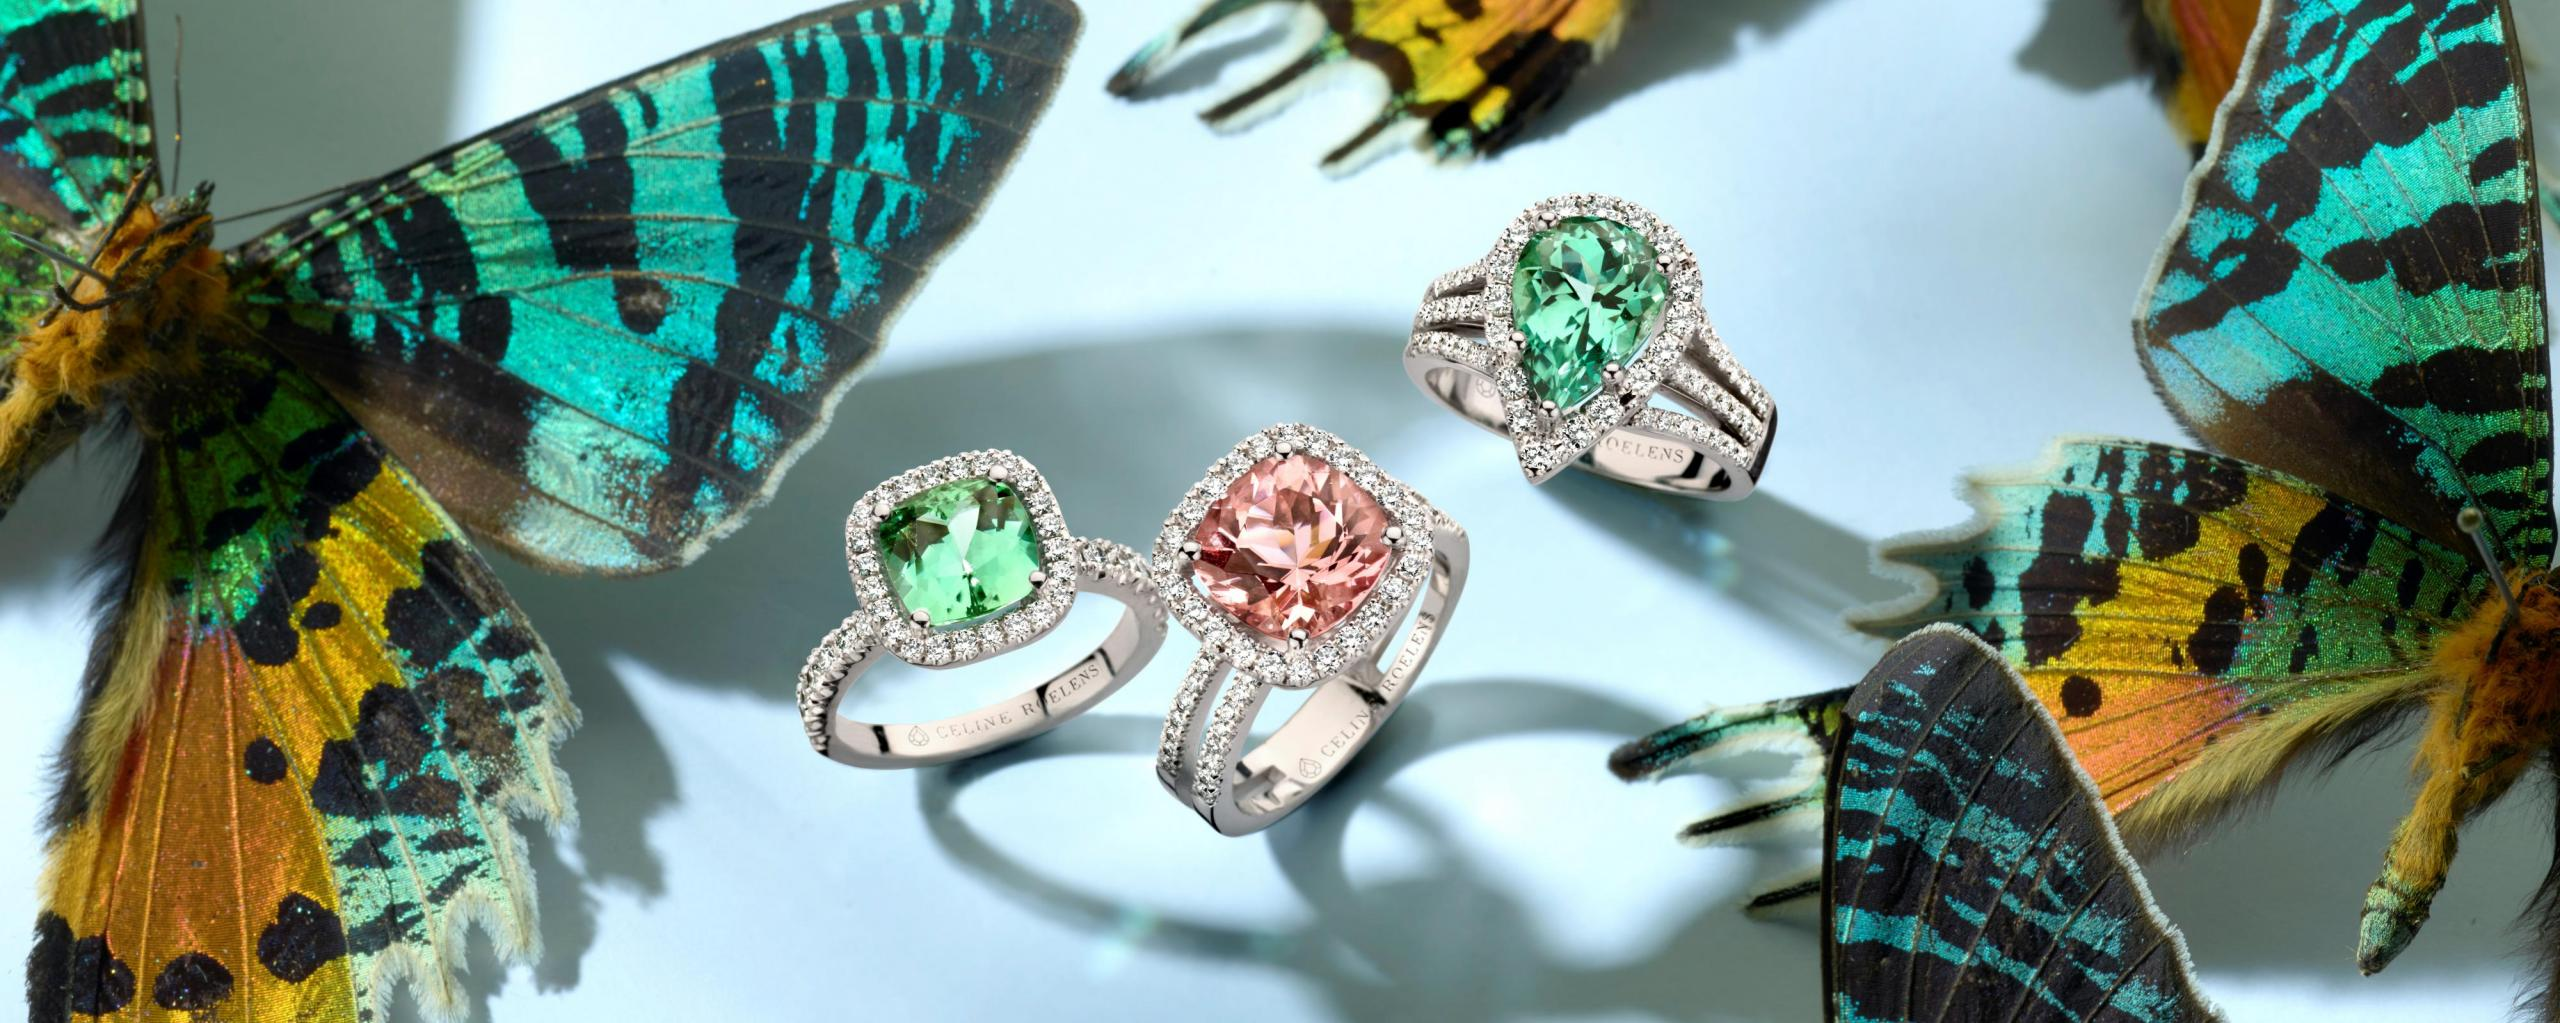 Butterflies and 3 rings in green and pink tourmaline